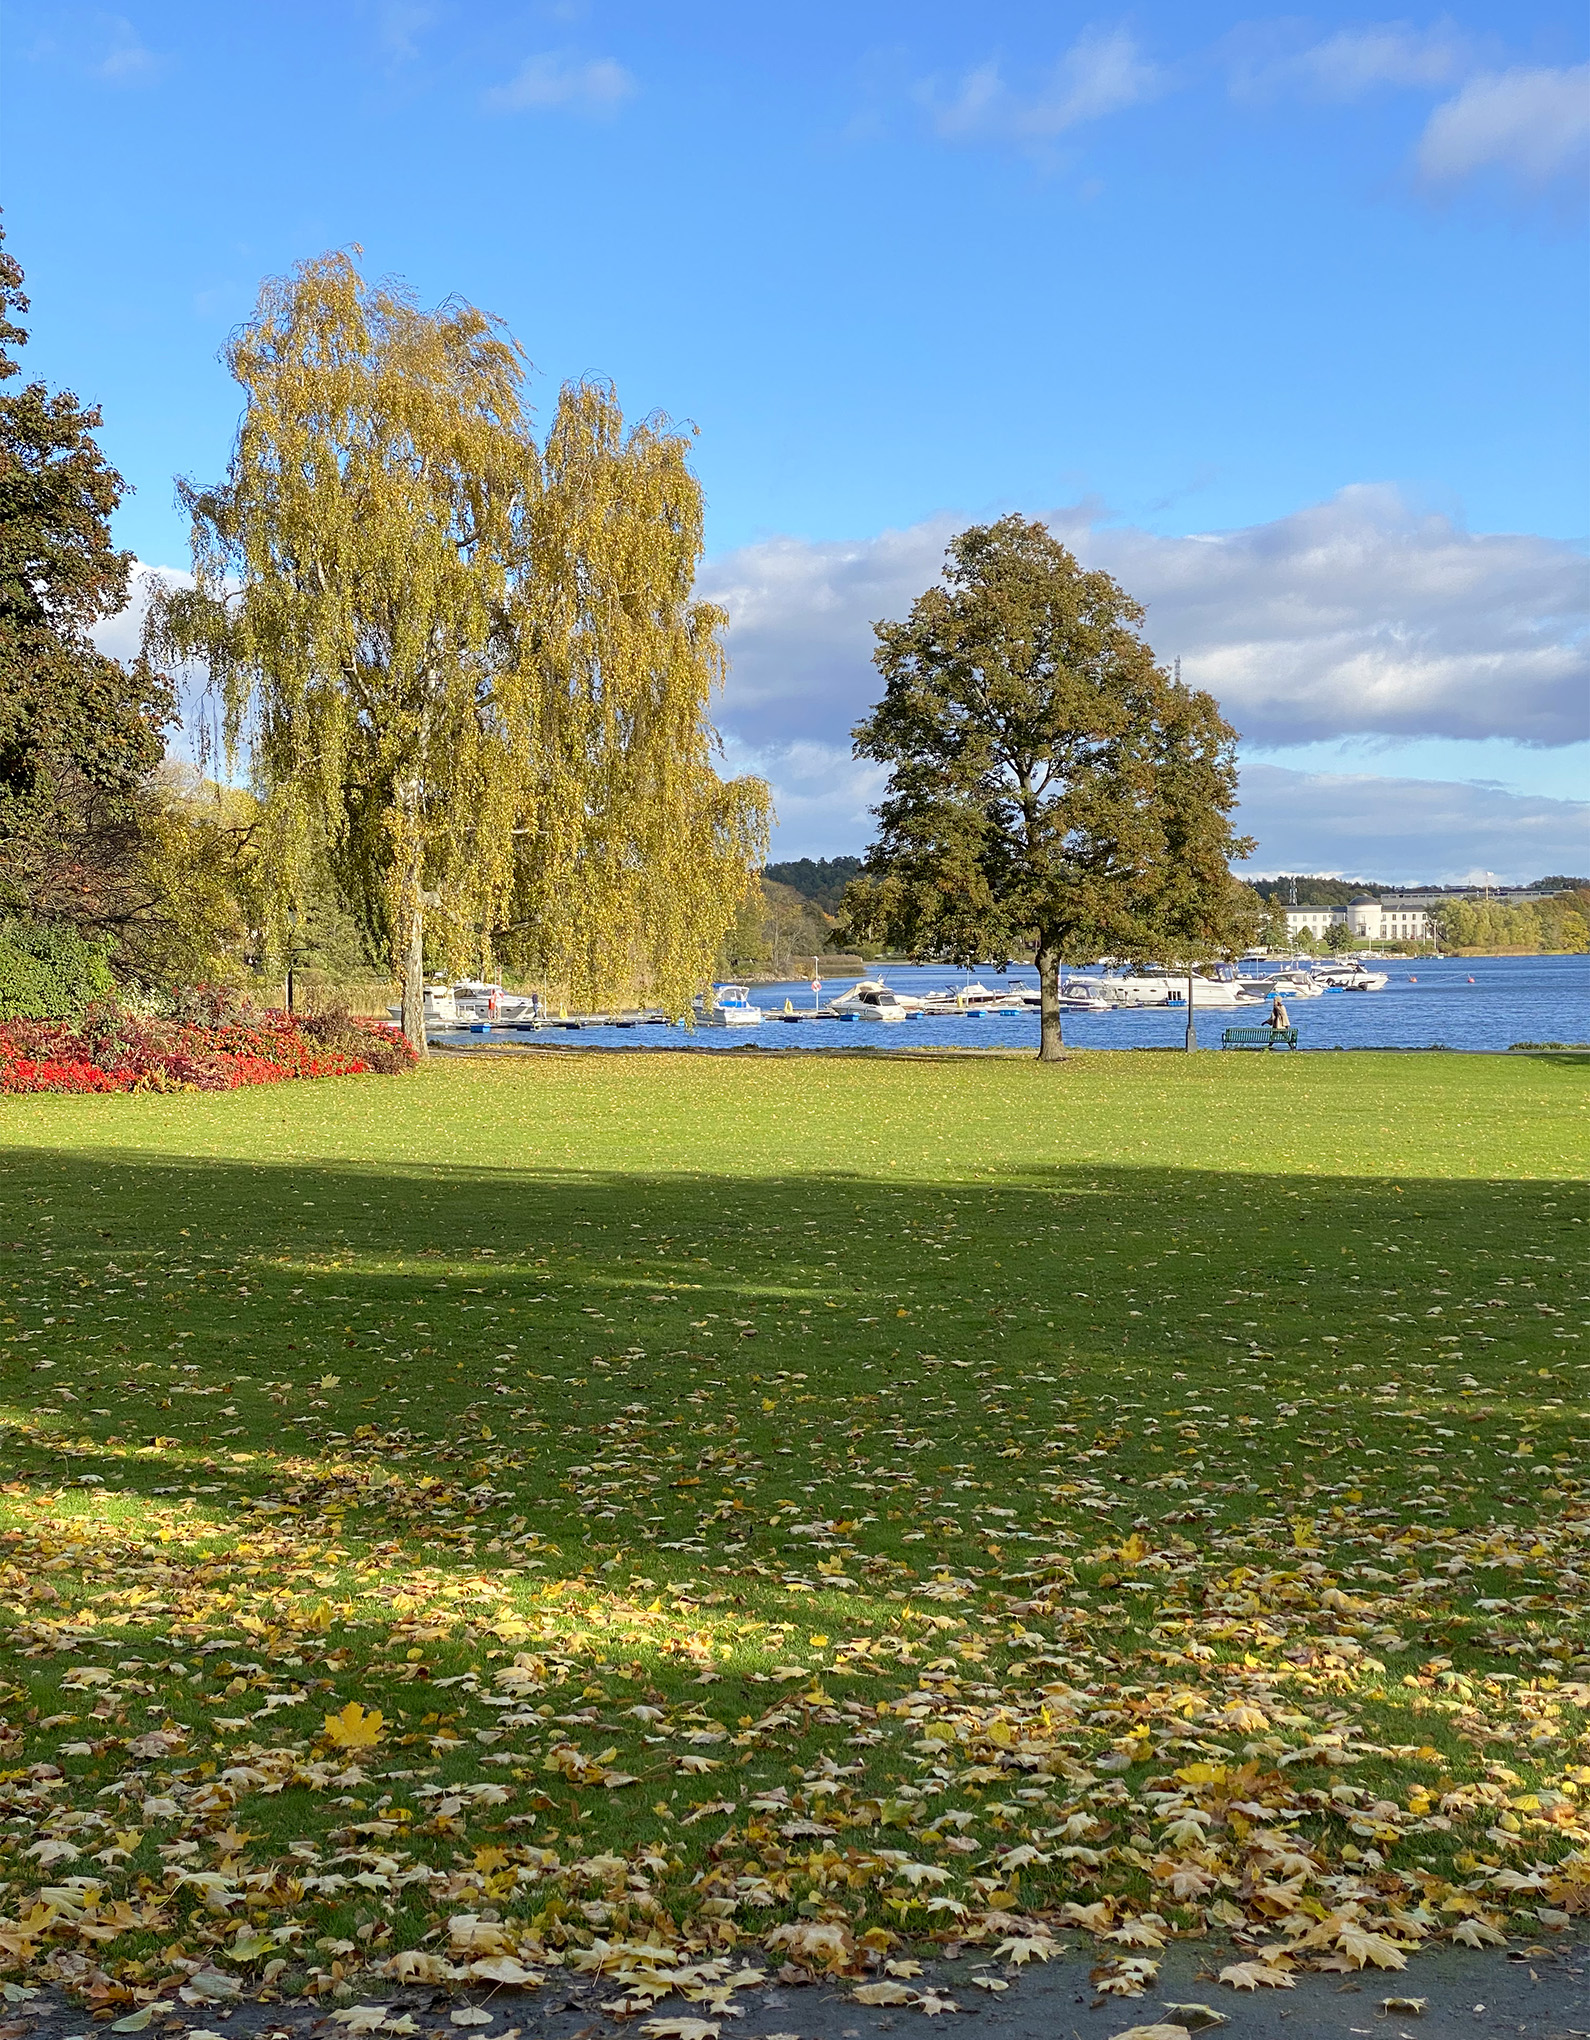 Park and nature in Stockholm during autumn season